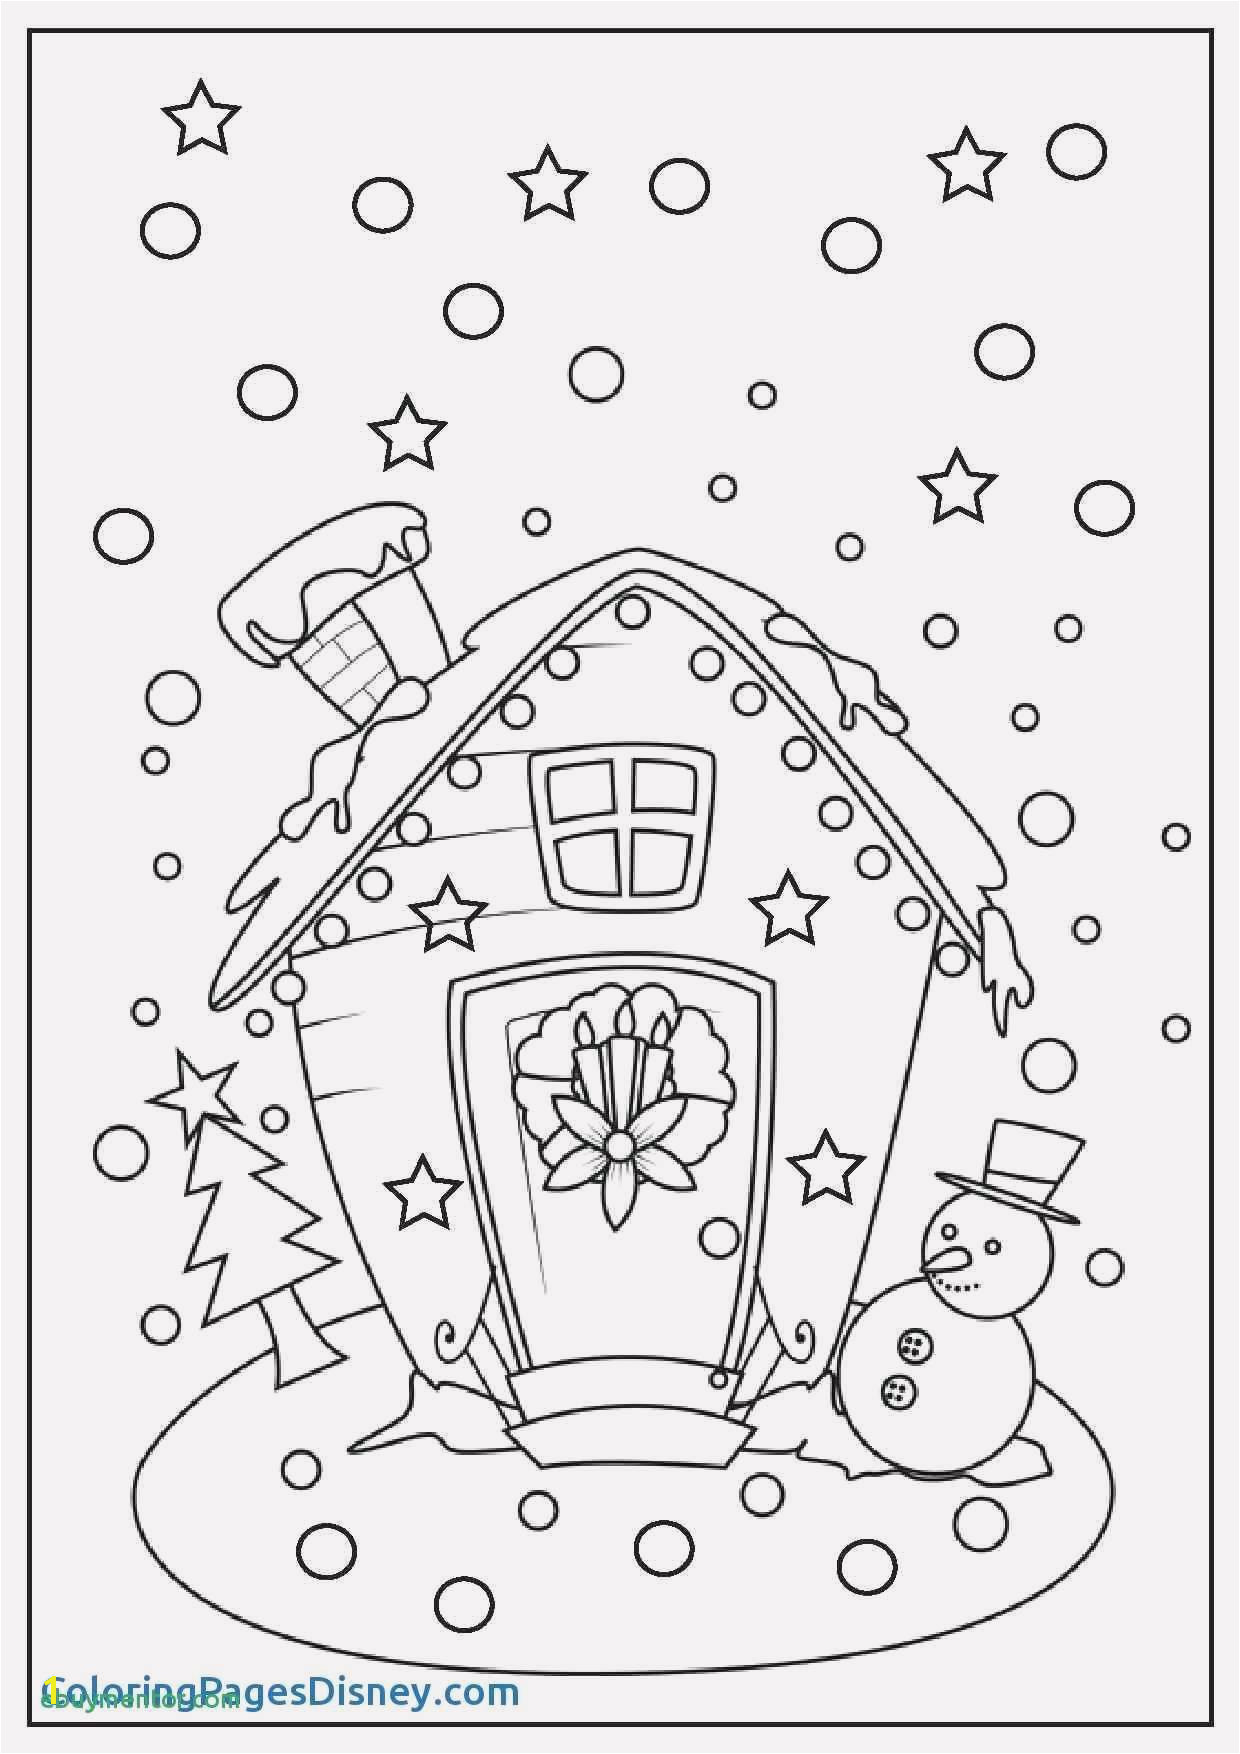 Winnie Pooh Christmas Coloring Pages Lovely Home Printable Christmas Coloring Sheets Fresh Cool Coloring Printables 0d